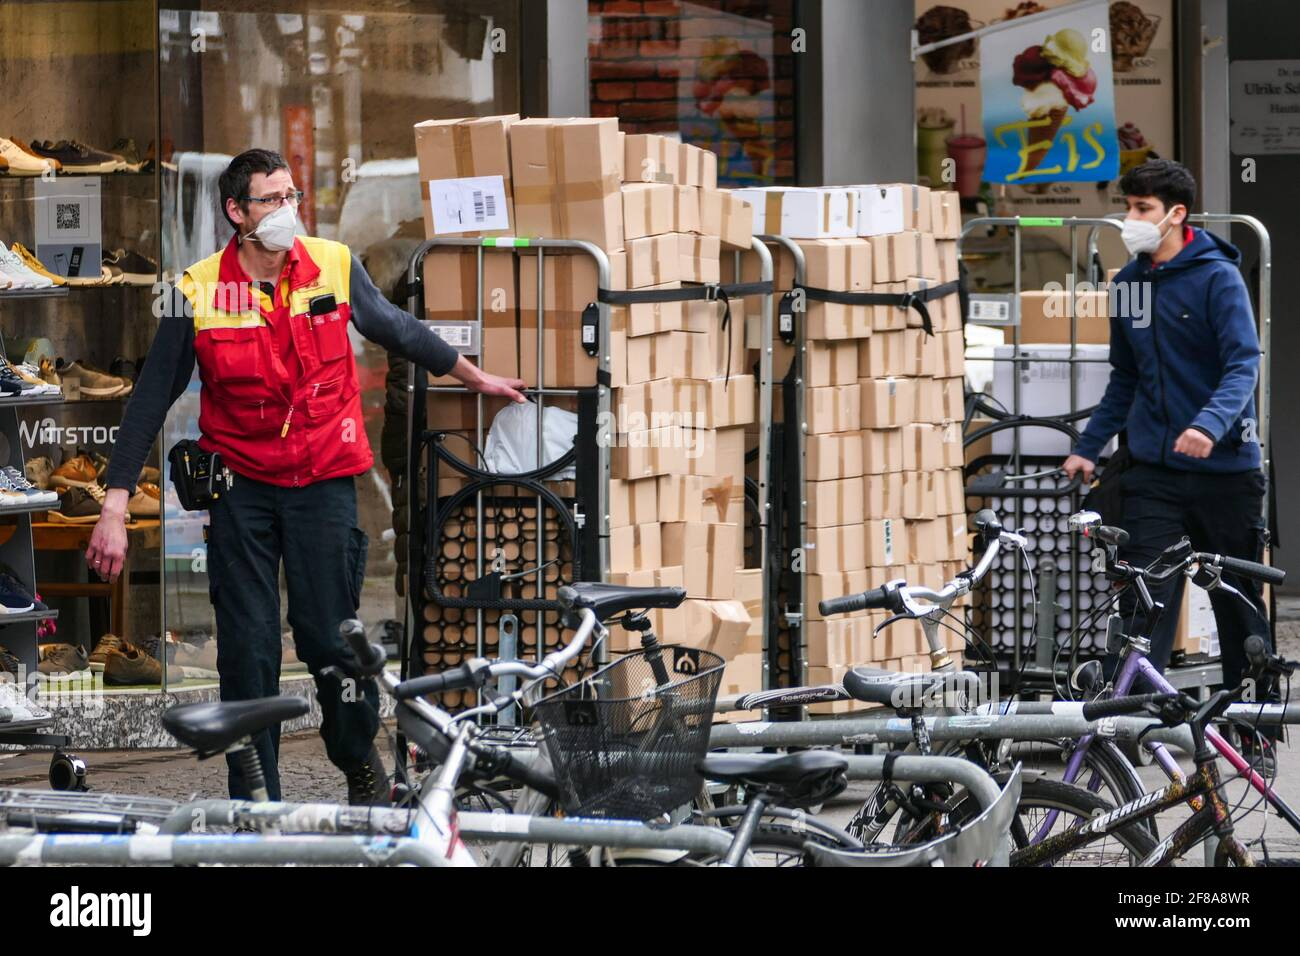 Berlin, Germany. 12th Apr, 2021. A courier wearing a face mask hauls packages in Berlin, capital of Germany, on April 12, 2021. More than three million COVID-19 infections have been registered in Germany on Monday since the outbreak of the pandemic, according to the Robert Koch Institute (RKI). Credit: Stefan Zeitz/Xinhua/Alamy Live News Stock Photo